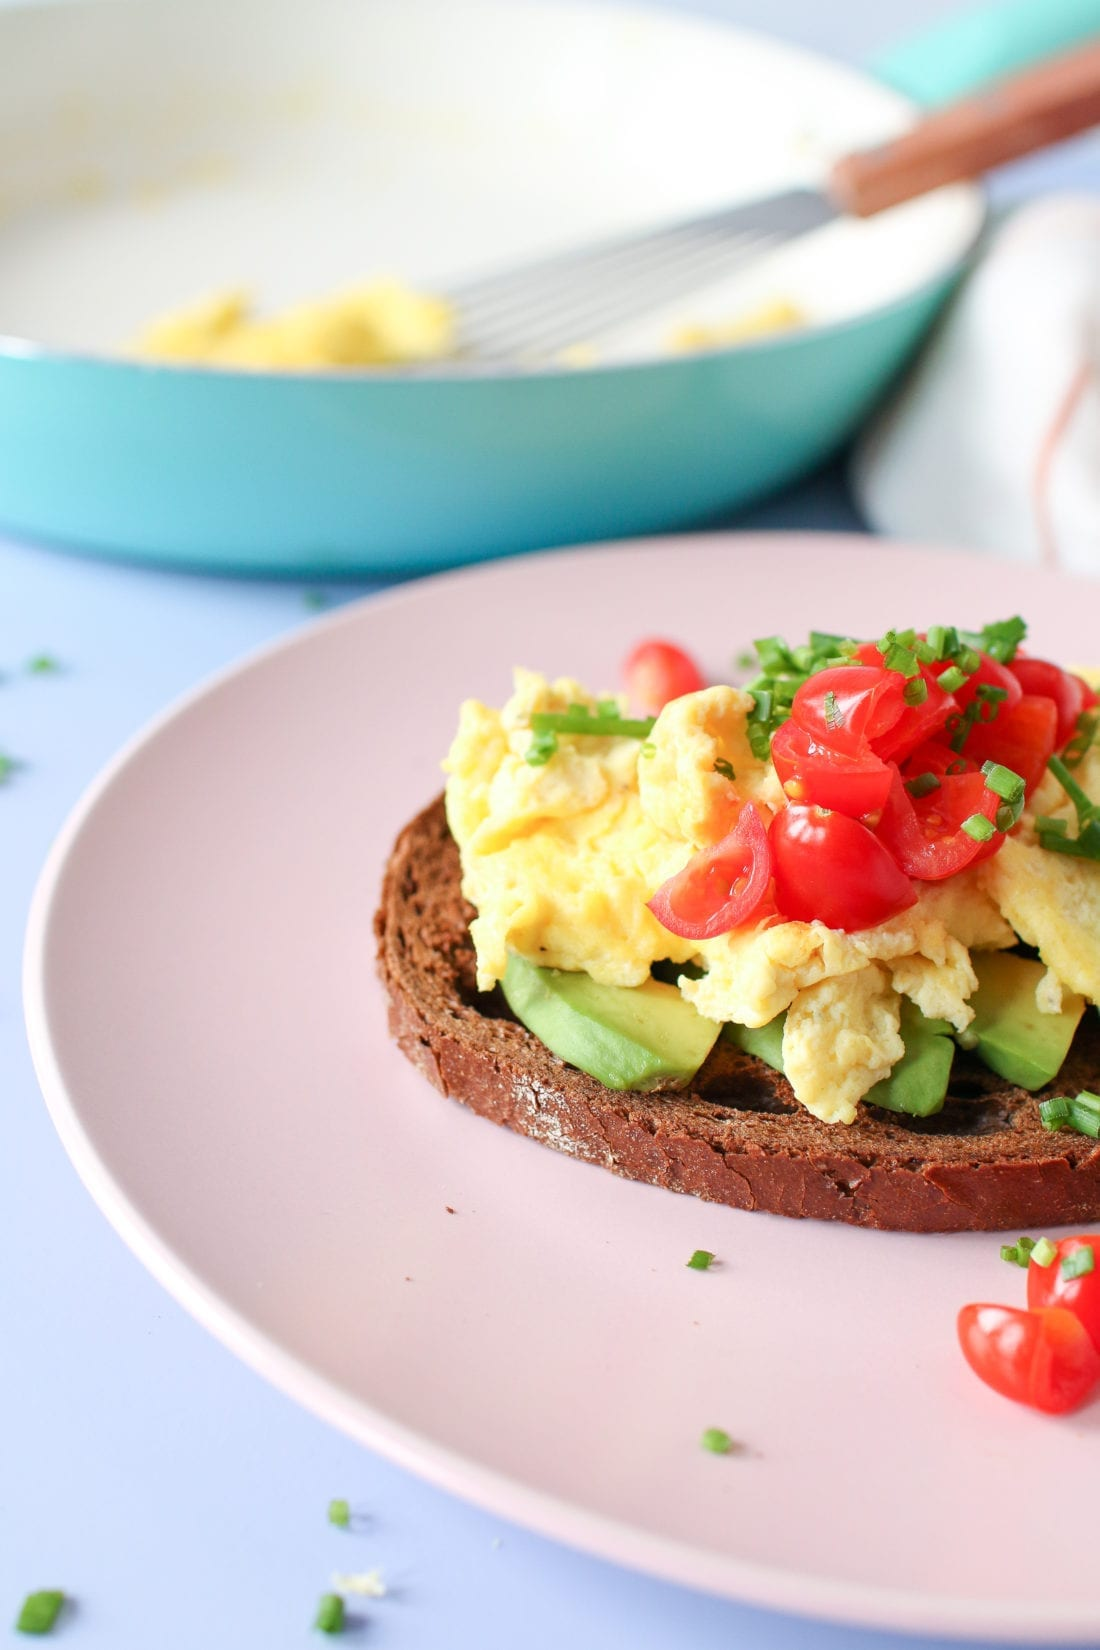 Perfectly scrambled fluffy eggs made with 2 simple ingredients- eggs and yogurt! Served on avocado toast and topped with tomatoes and fresh chives; a quick meal for breakfast or lunch.